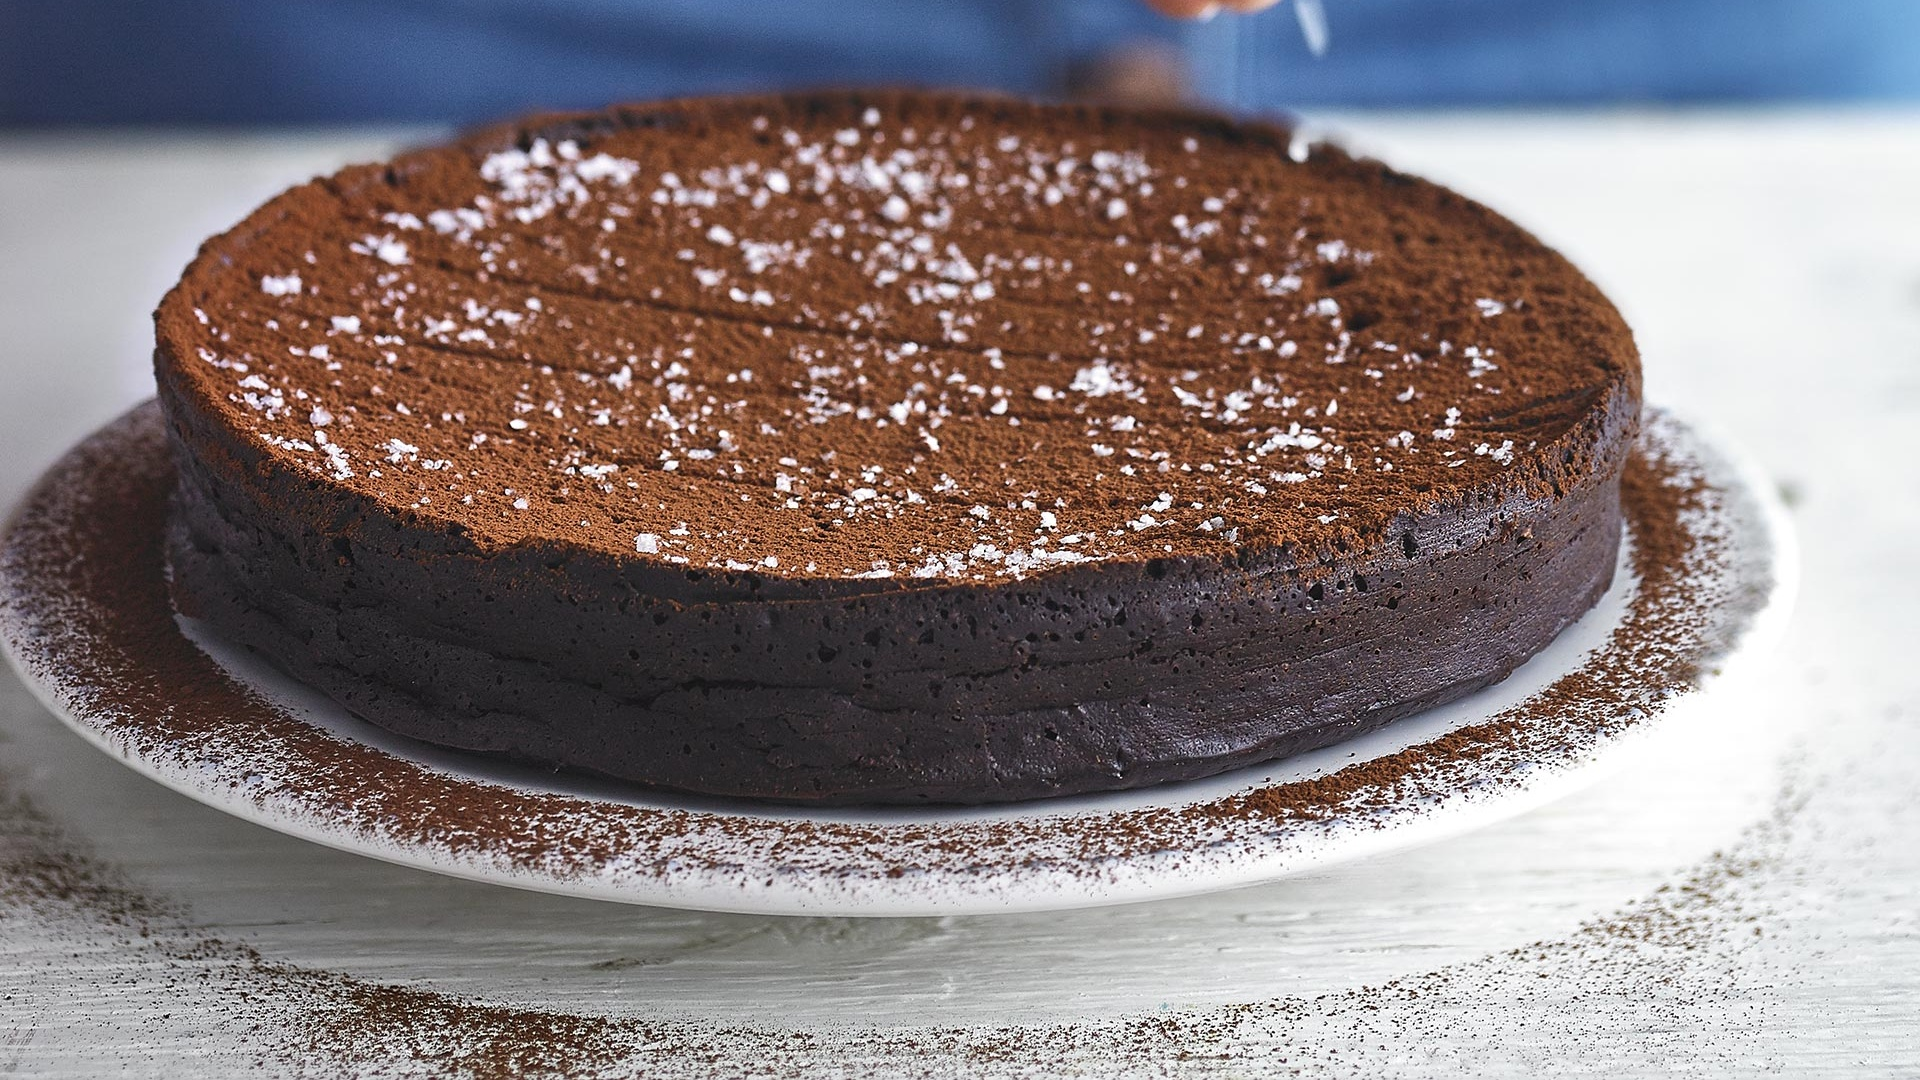 Alexandra Dudley's sea salt chocolate torte; Photograph by Andrew Burton